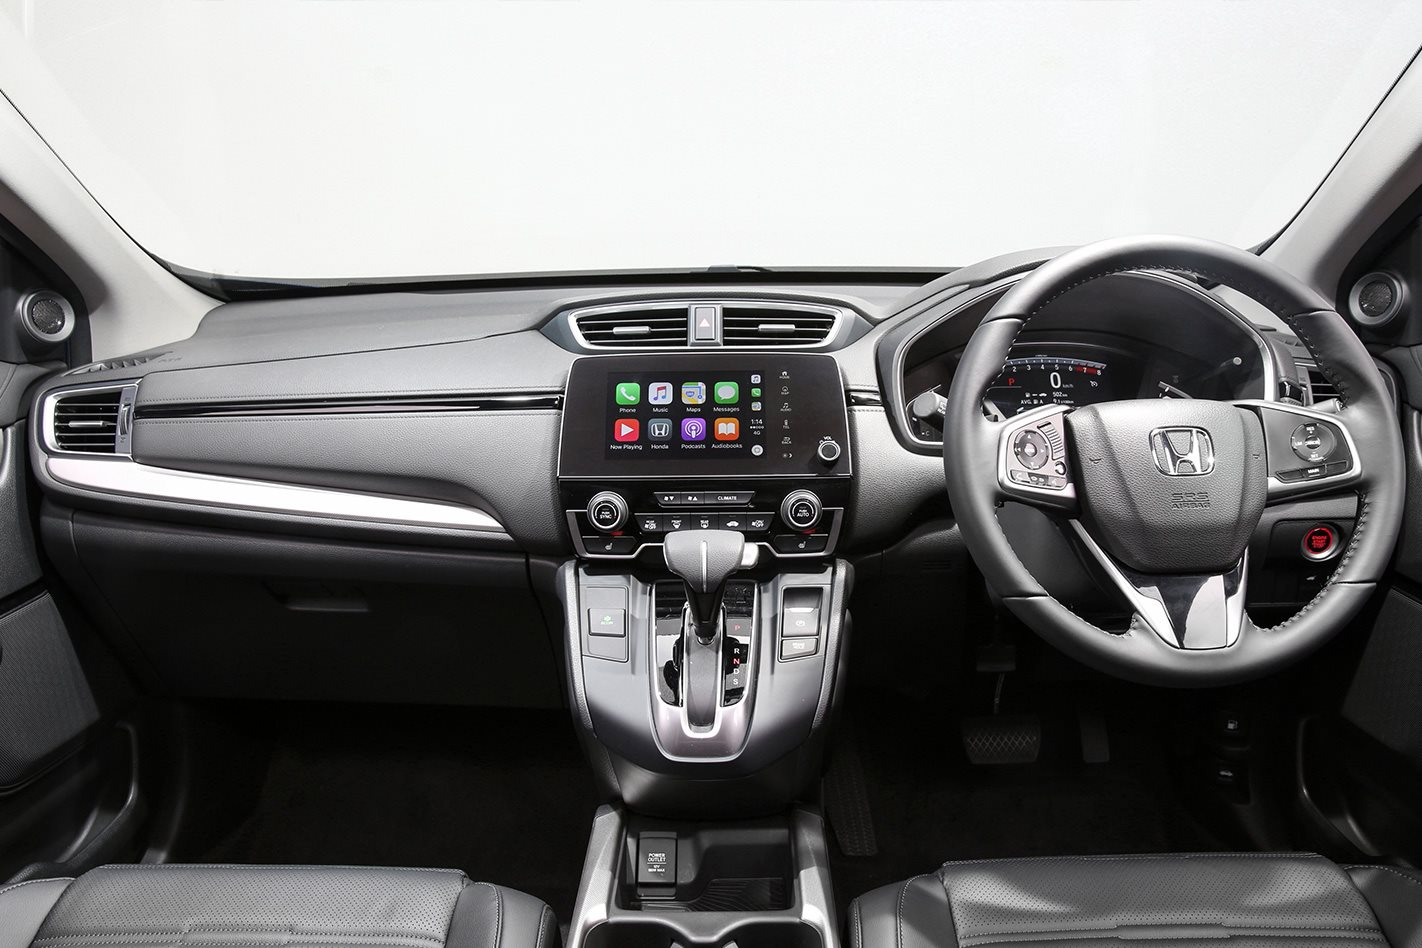 2018 honda crv interior. Unique Crv Another Letdown Is The Roofmounted  Rather Than Backrestmounted Child  Seat Top Tether Anchorages Not A Great Issue In Fiveseater  Intended 2018 Honda Crv Interior